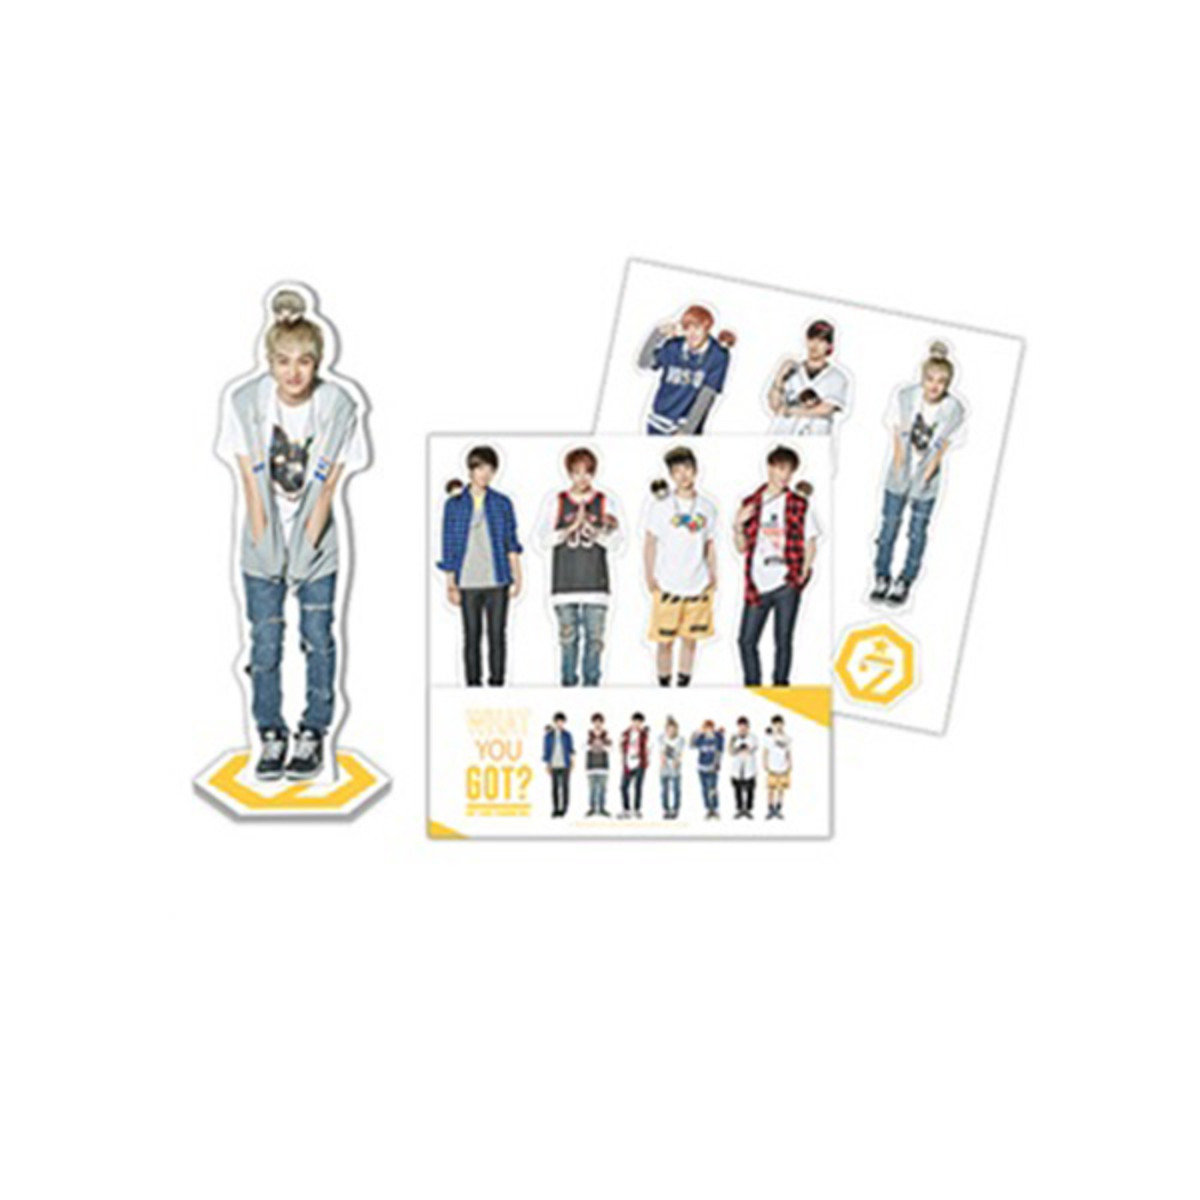 ​GOT7 - PURE SEASON 2 - 迷你人型人牌 SET (7pcs)(PART.1)_GD00013138